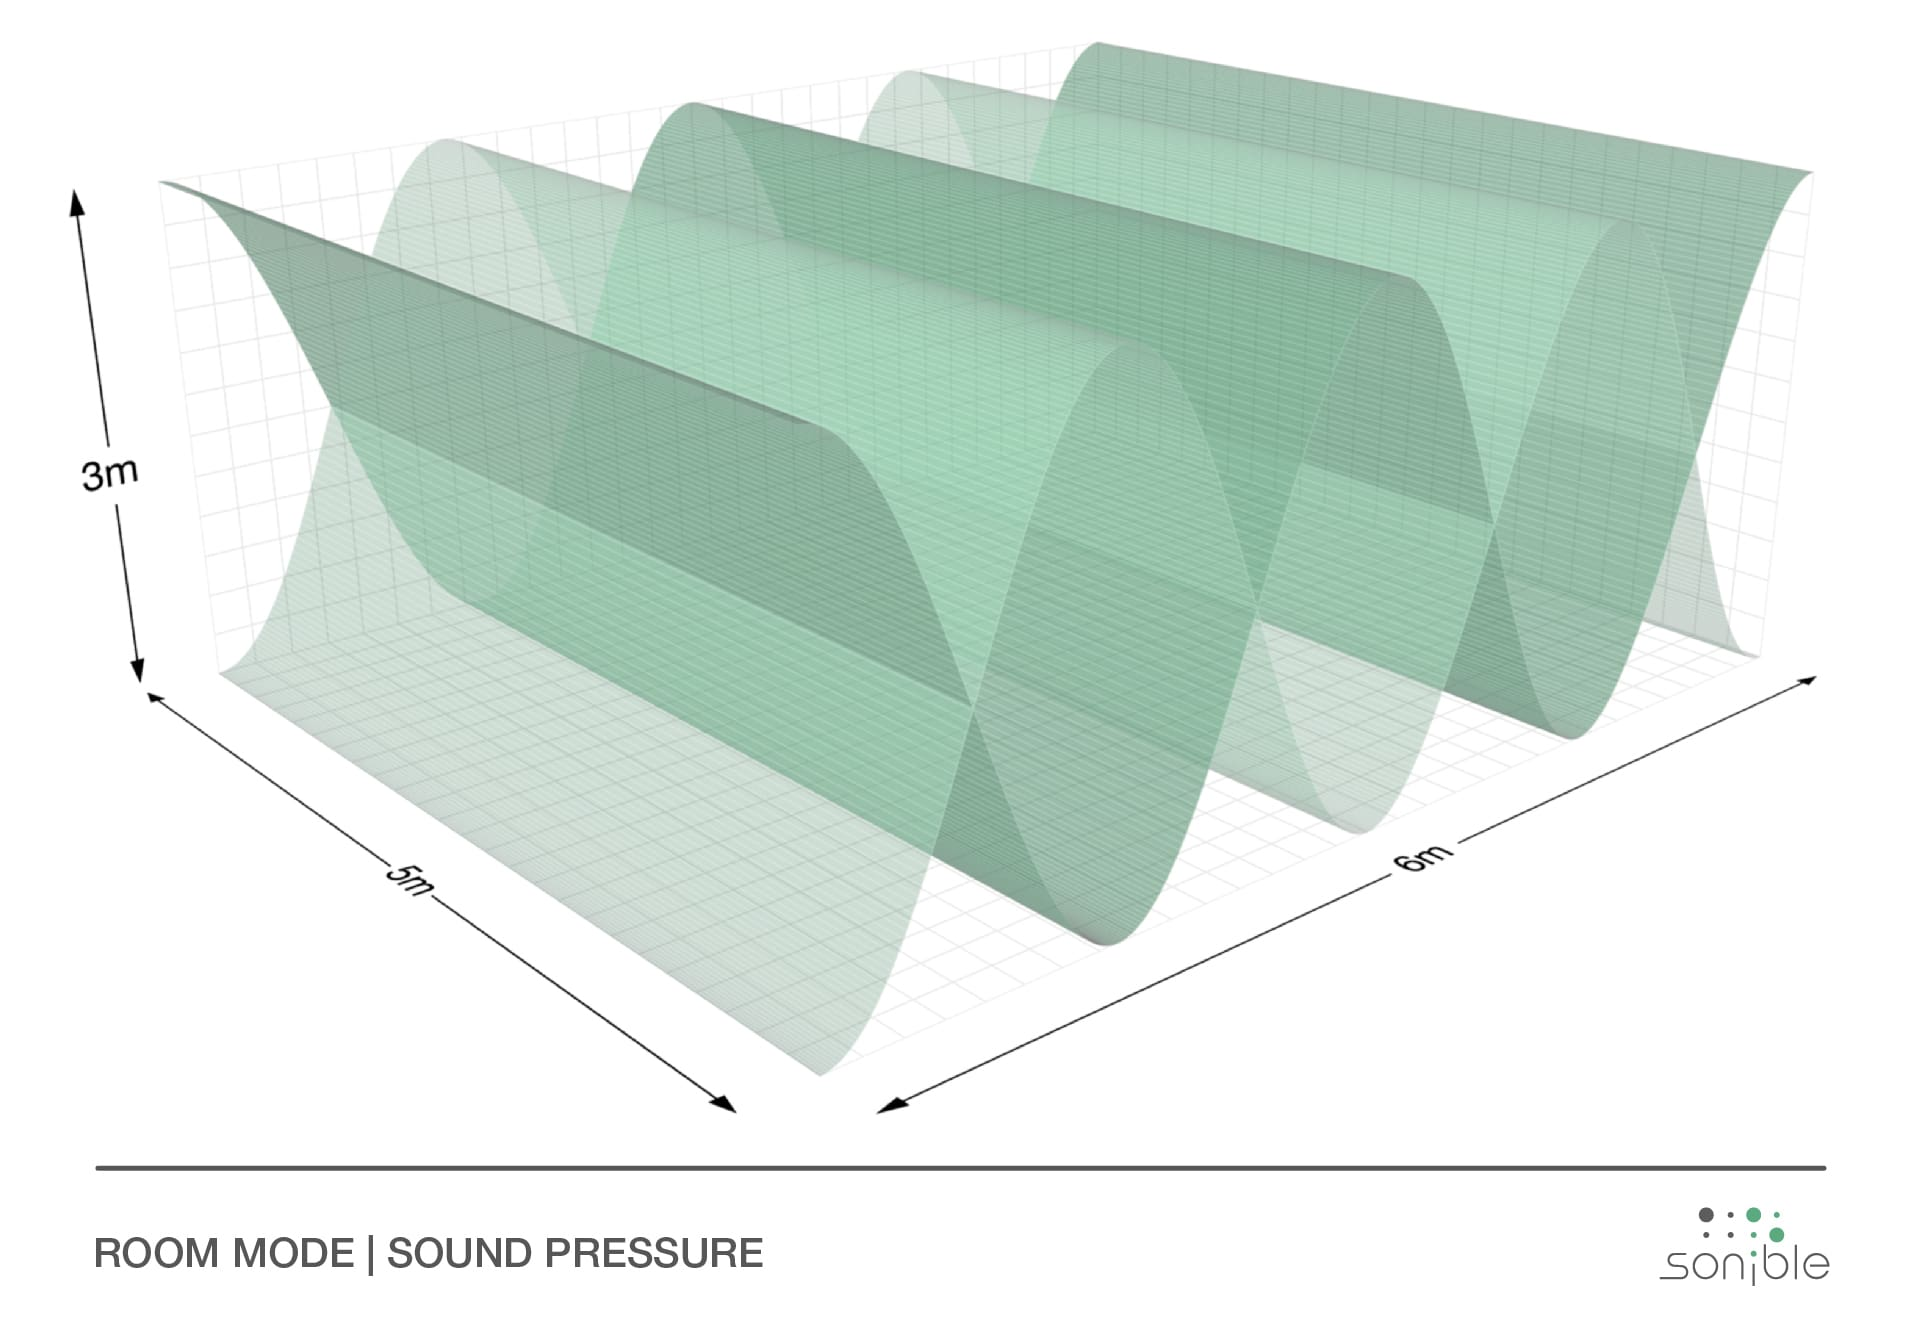 sound pressure inside ideal room